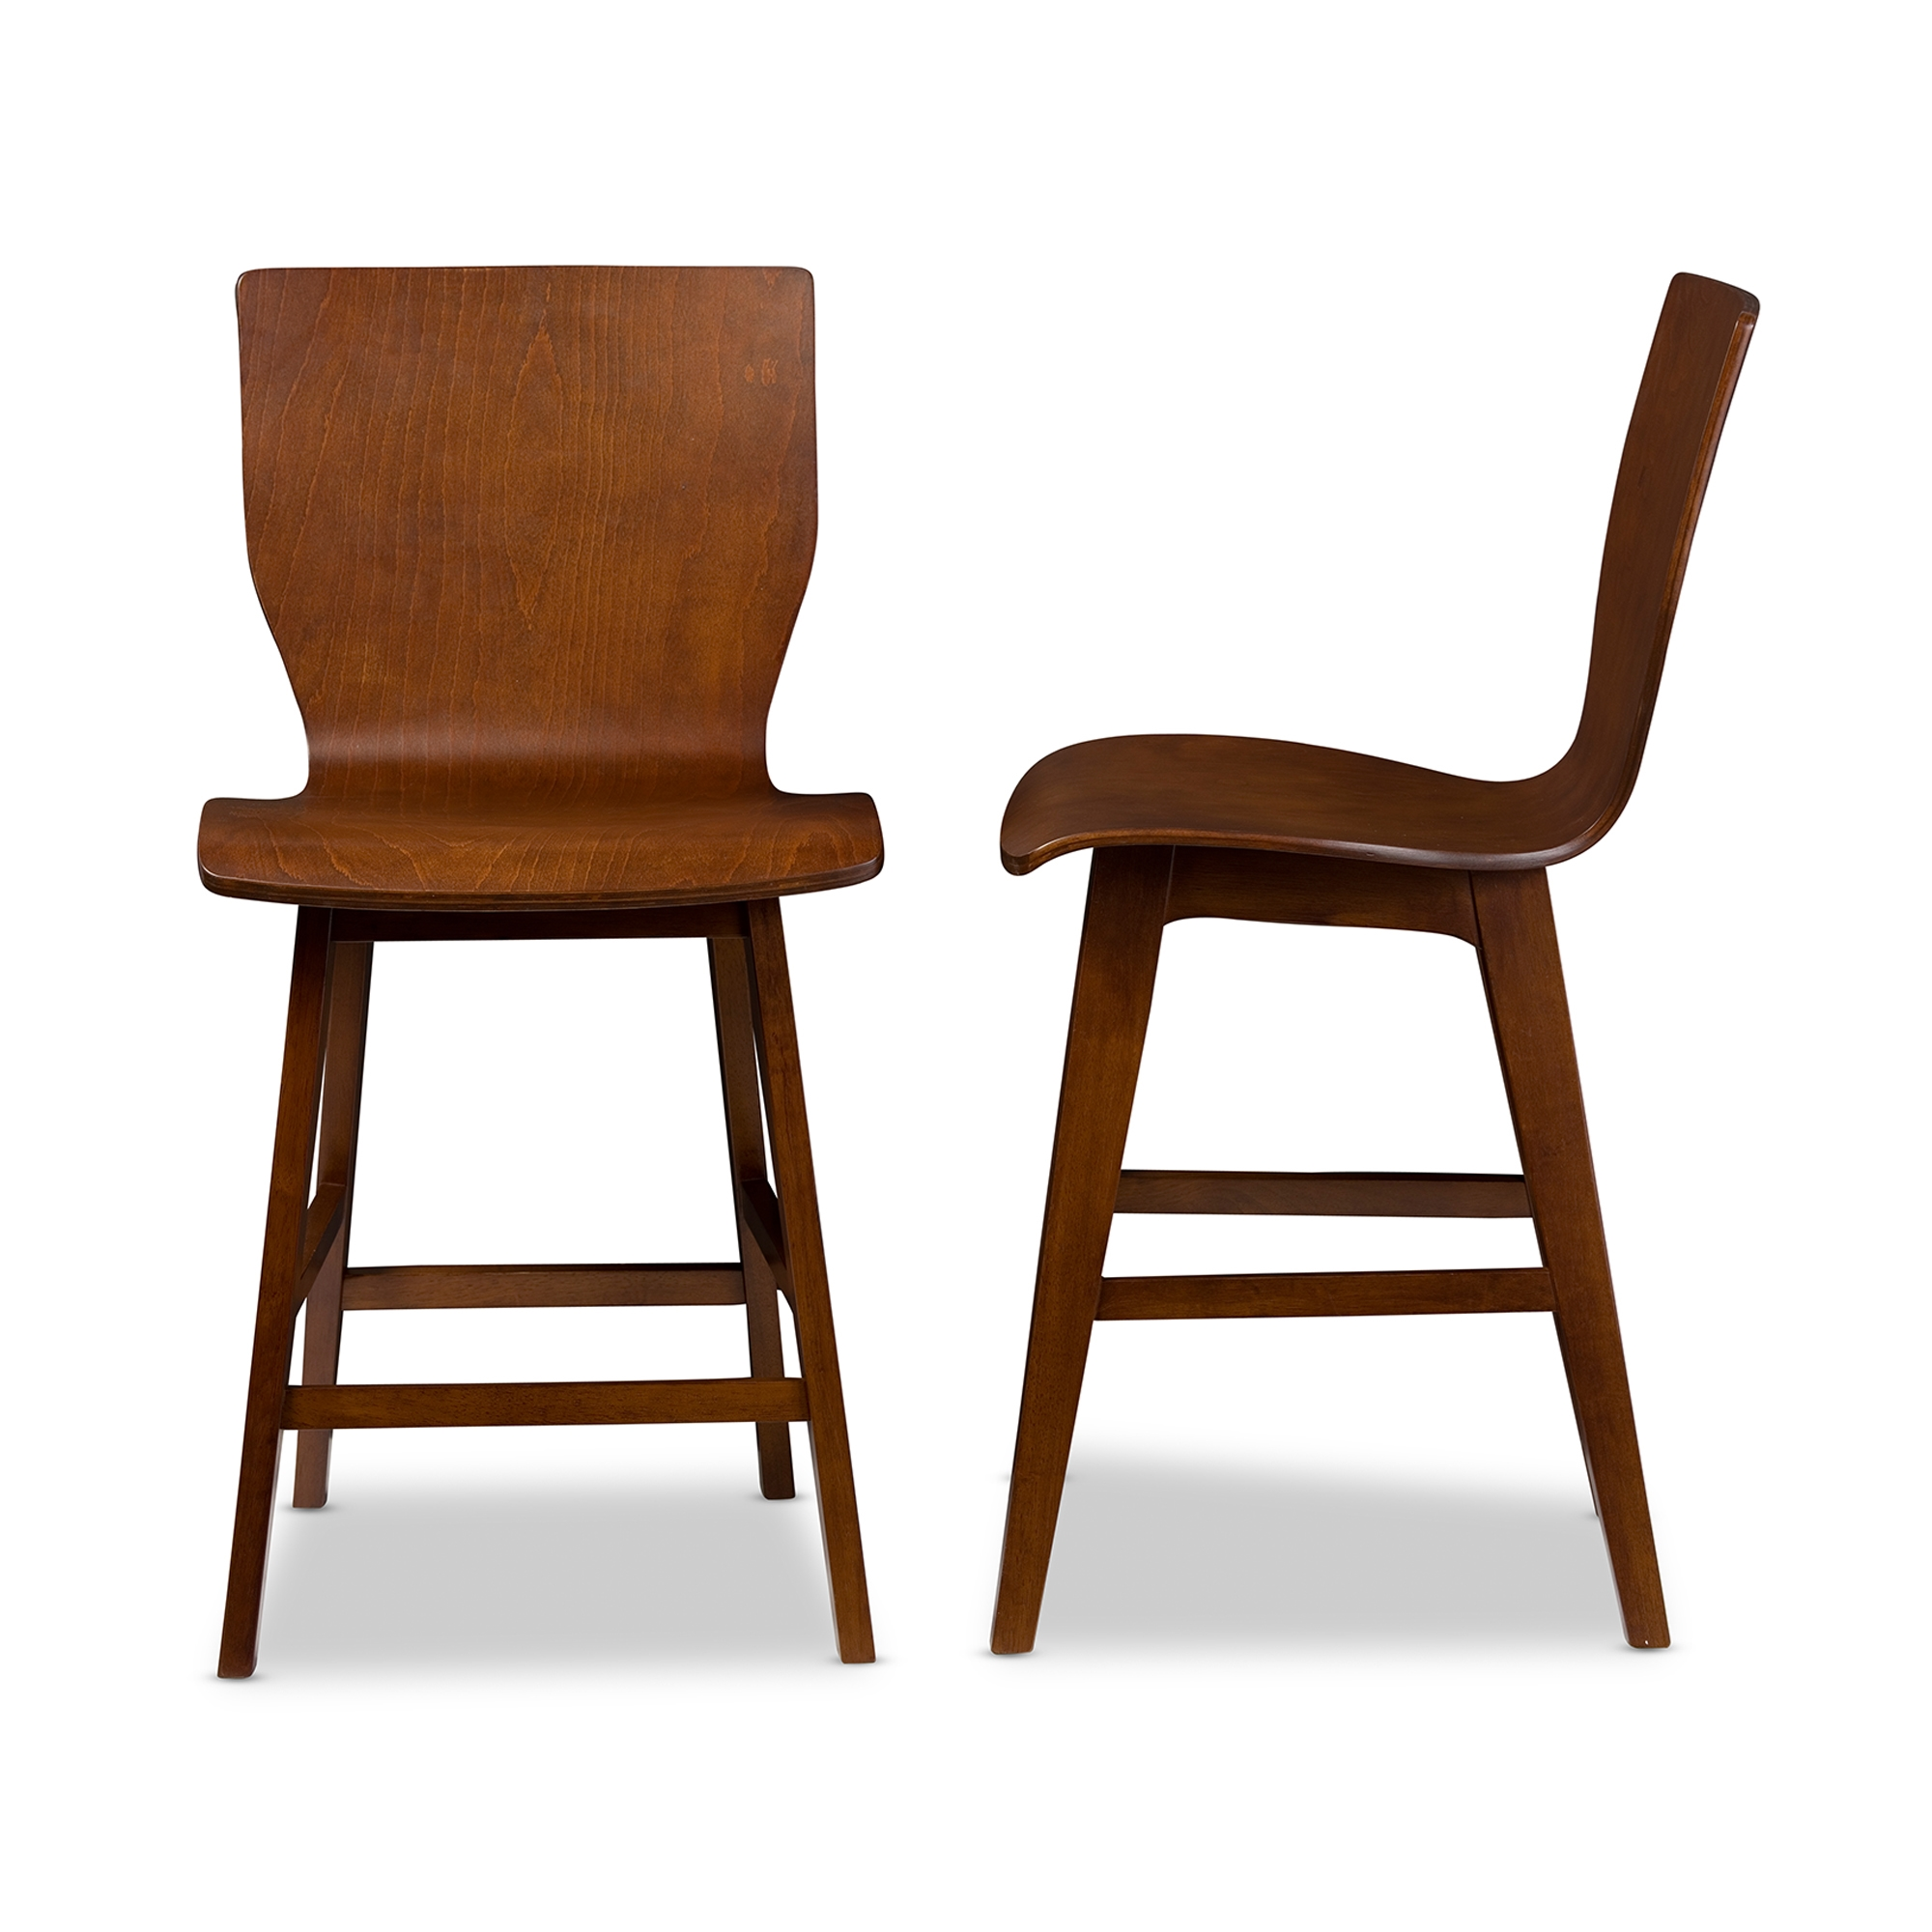 Baxton Studio Elsa Mid-century Modern Scandinavian Style Dark Walnut Bent Wood Counter Stool  sc 1 st  Baxton Studio Outlet : walnut kitchen stools - islam-shia.org